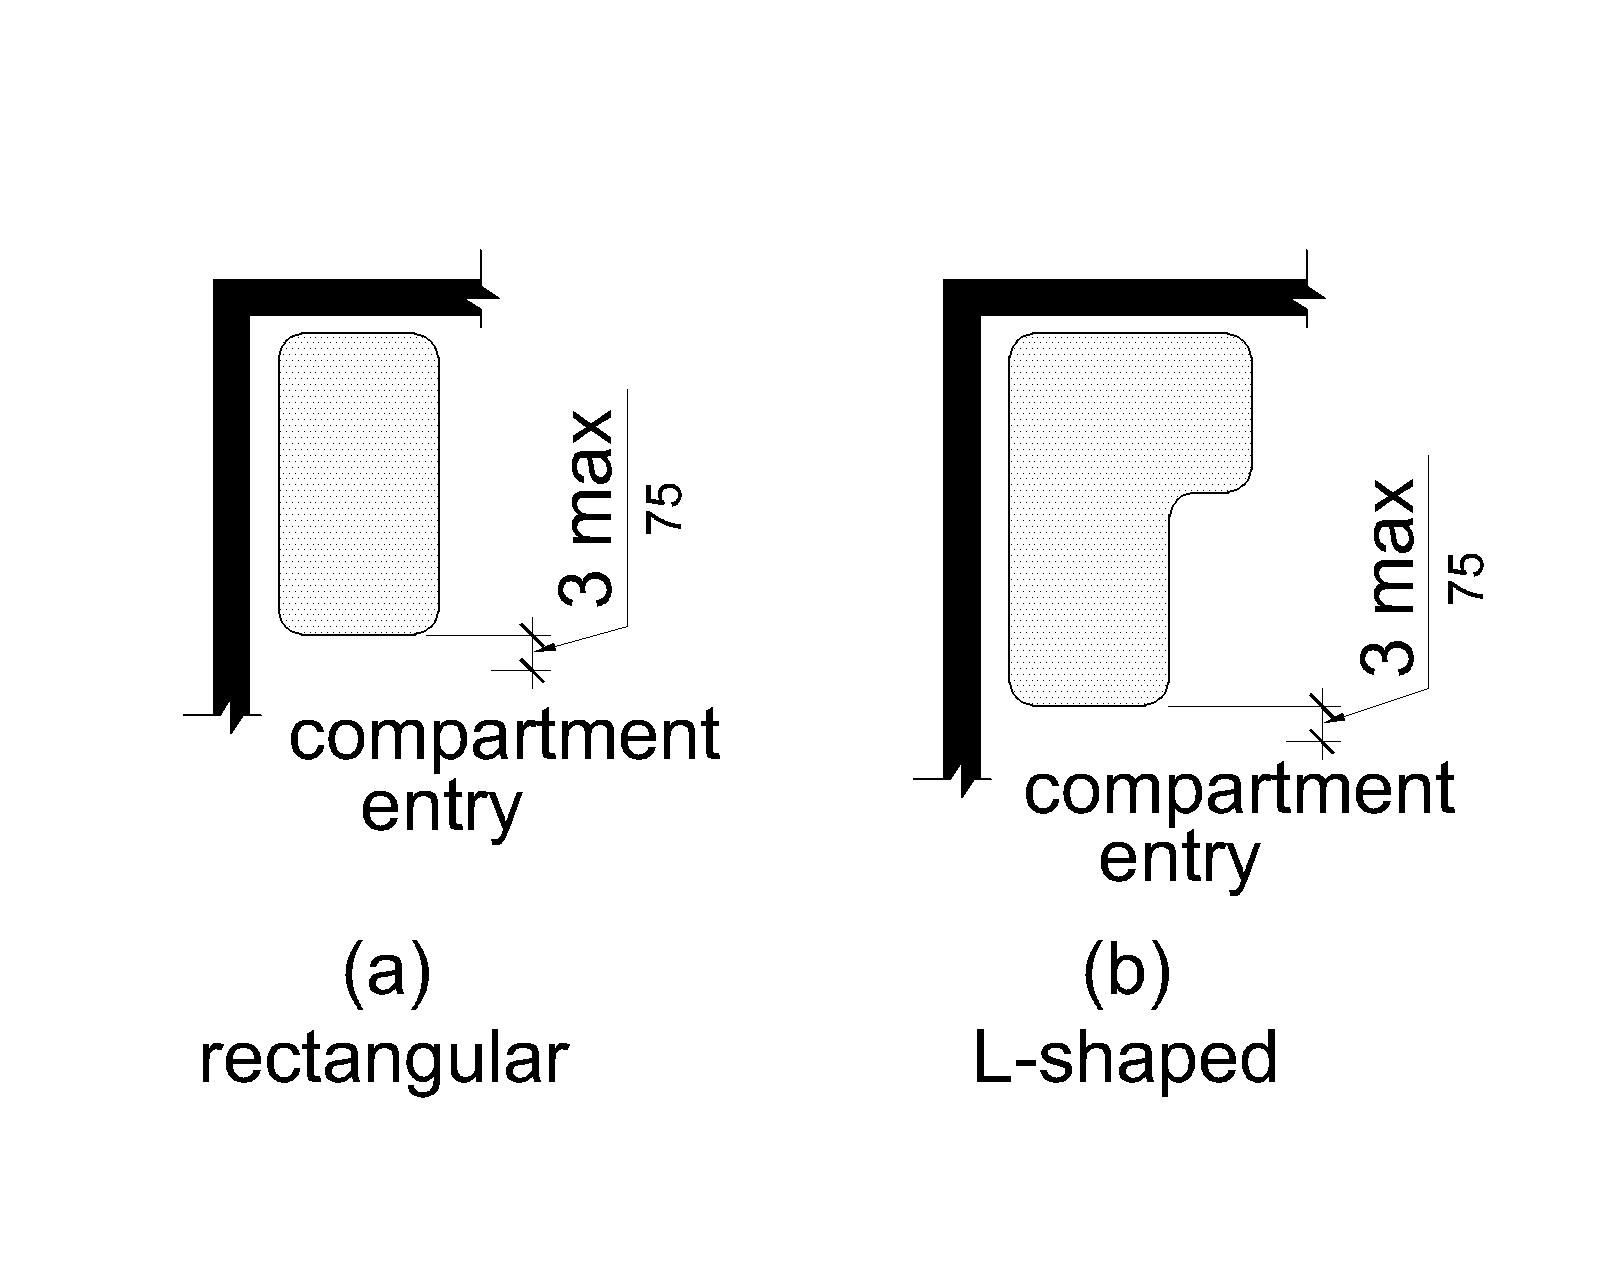 Figure (a) is a plan view of a rectangular seat and figure (b) is a plan view of an L-shaped seat. The front edge of each is 3 inches (75 mm) maximum from the compartment entry.